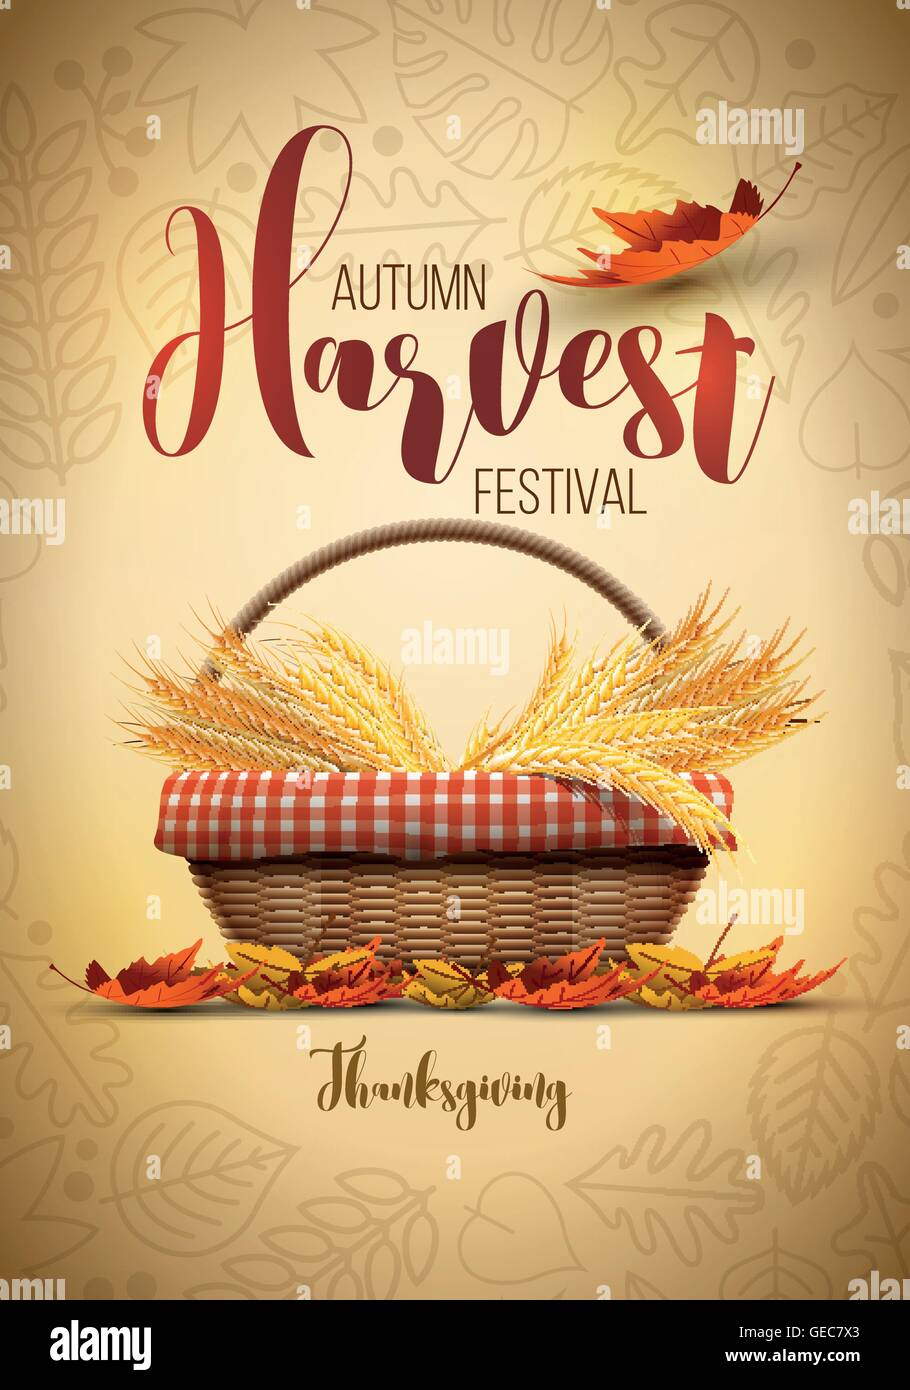 Vector autumn harvest festival poster design template. Elements are layered separately in vector file. Stock Vector